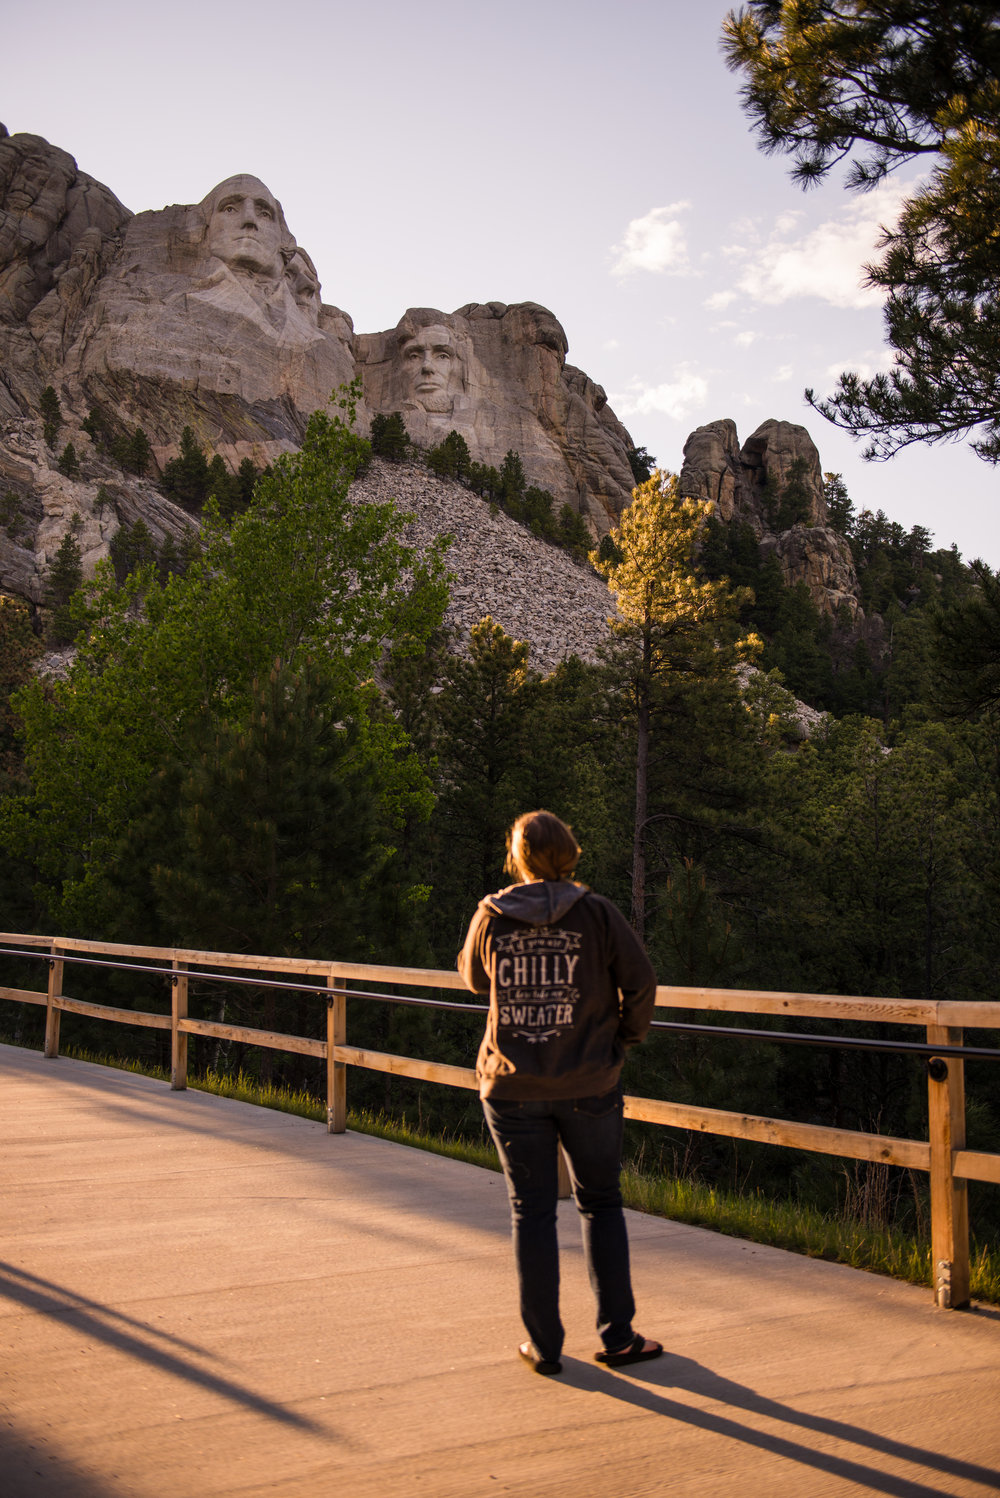 Marcus and I got to go to Mt. Rushmore for the FIRST TIME! I was truly in awe of how magnificent it was! Around this time I was just itching for a trip and we jumped in the car the first opportunity we had a 3 day weekend. I love road tripping with Marcus. We just have a fun time listening to music and talking. The Airbnb we stayed at had a corgi which i have been crushing over for the entire year. THEY ARE SO CUTE.